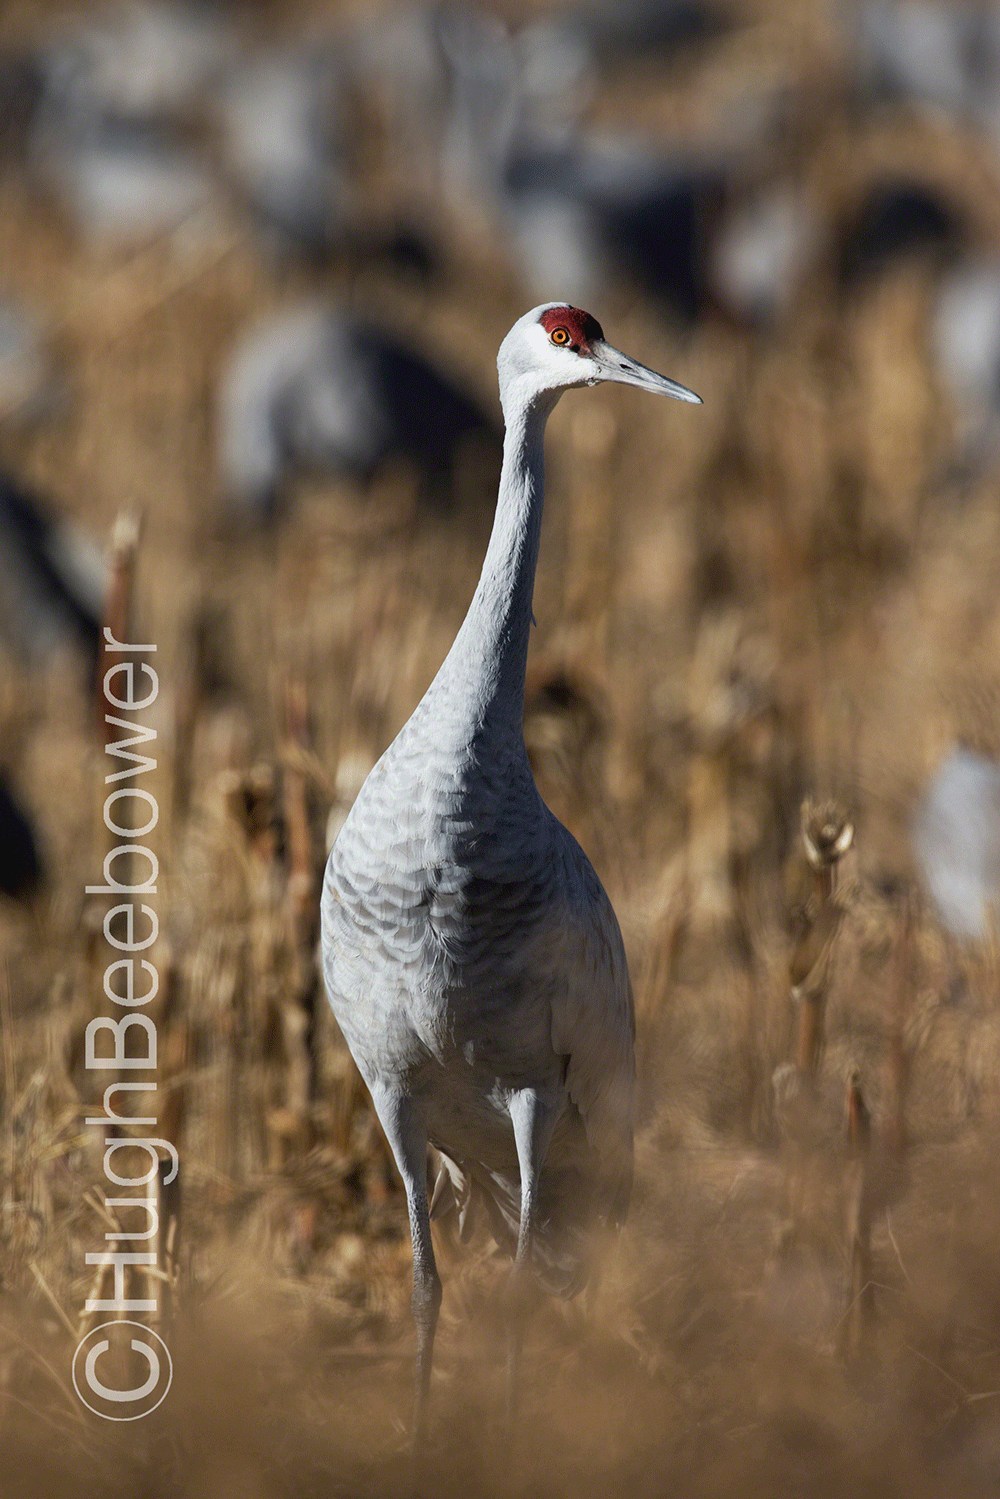 Sandhill Crane in a Cornfield | Beebower Productions